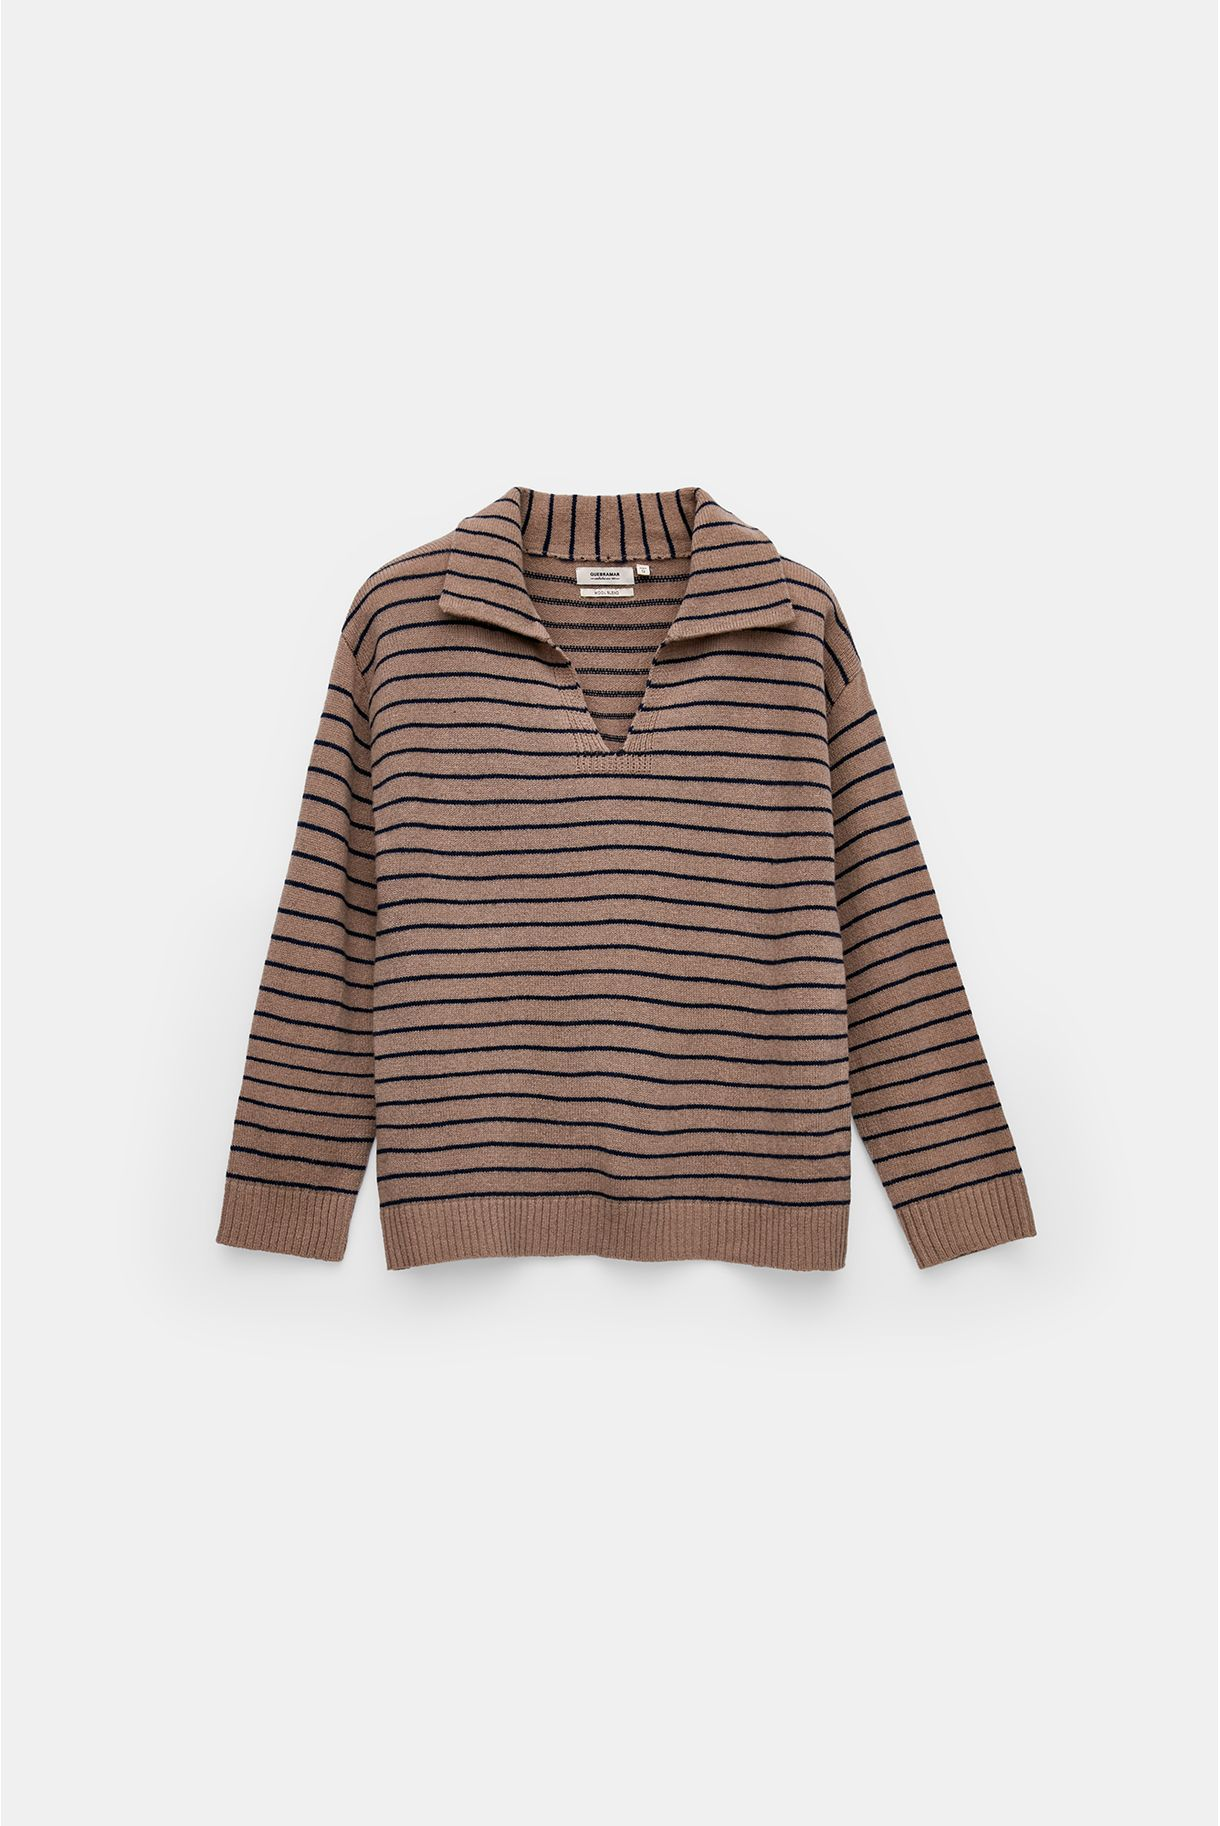 STRIPPED SWEATER WITH COLLAR